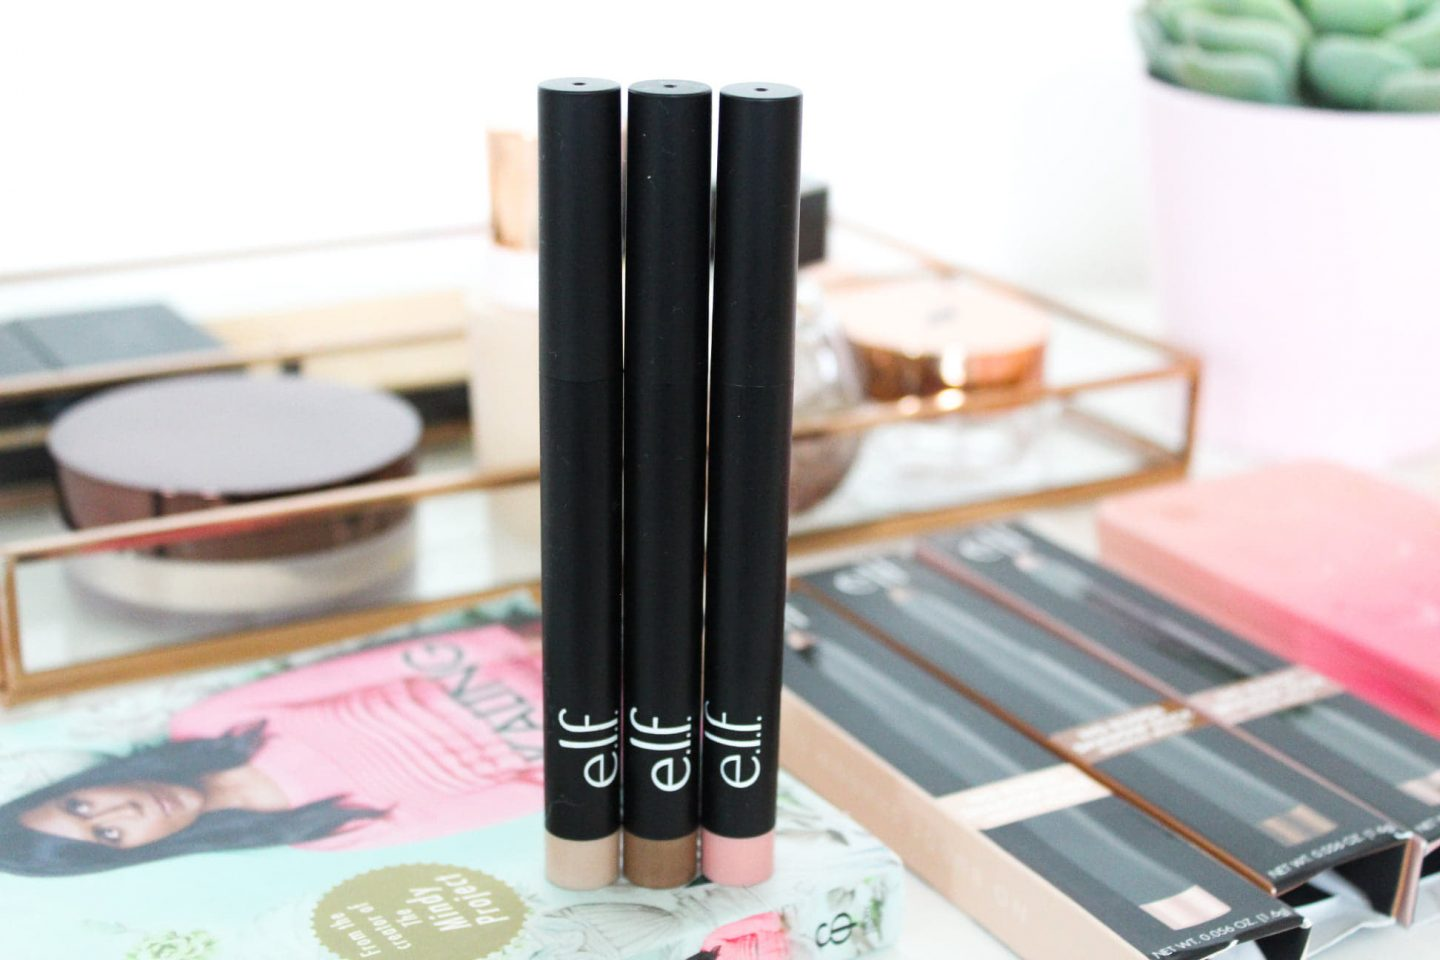 e.l.f. No Budge Shadow Stick